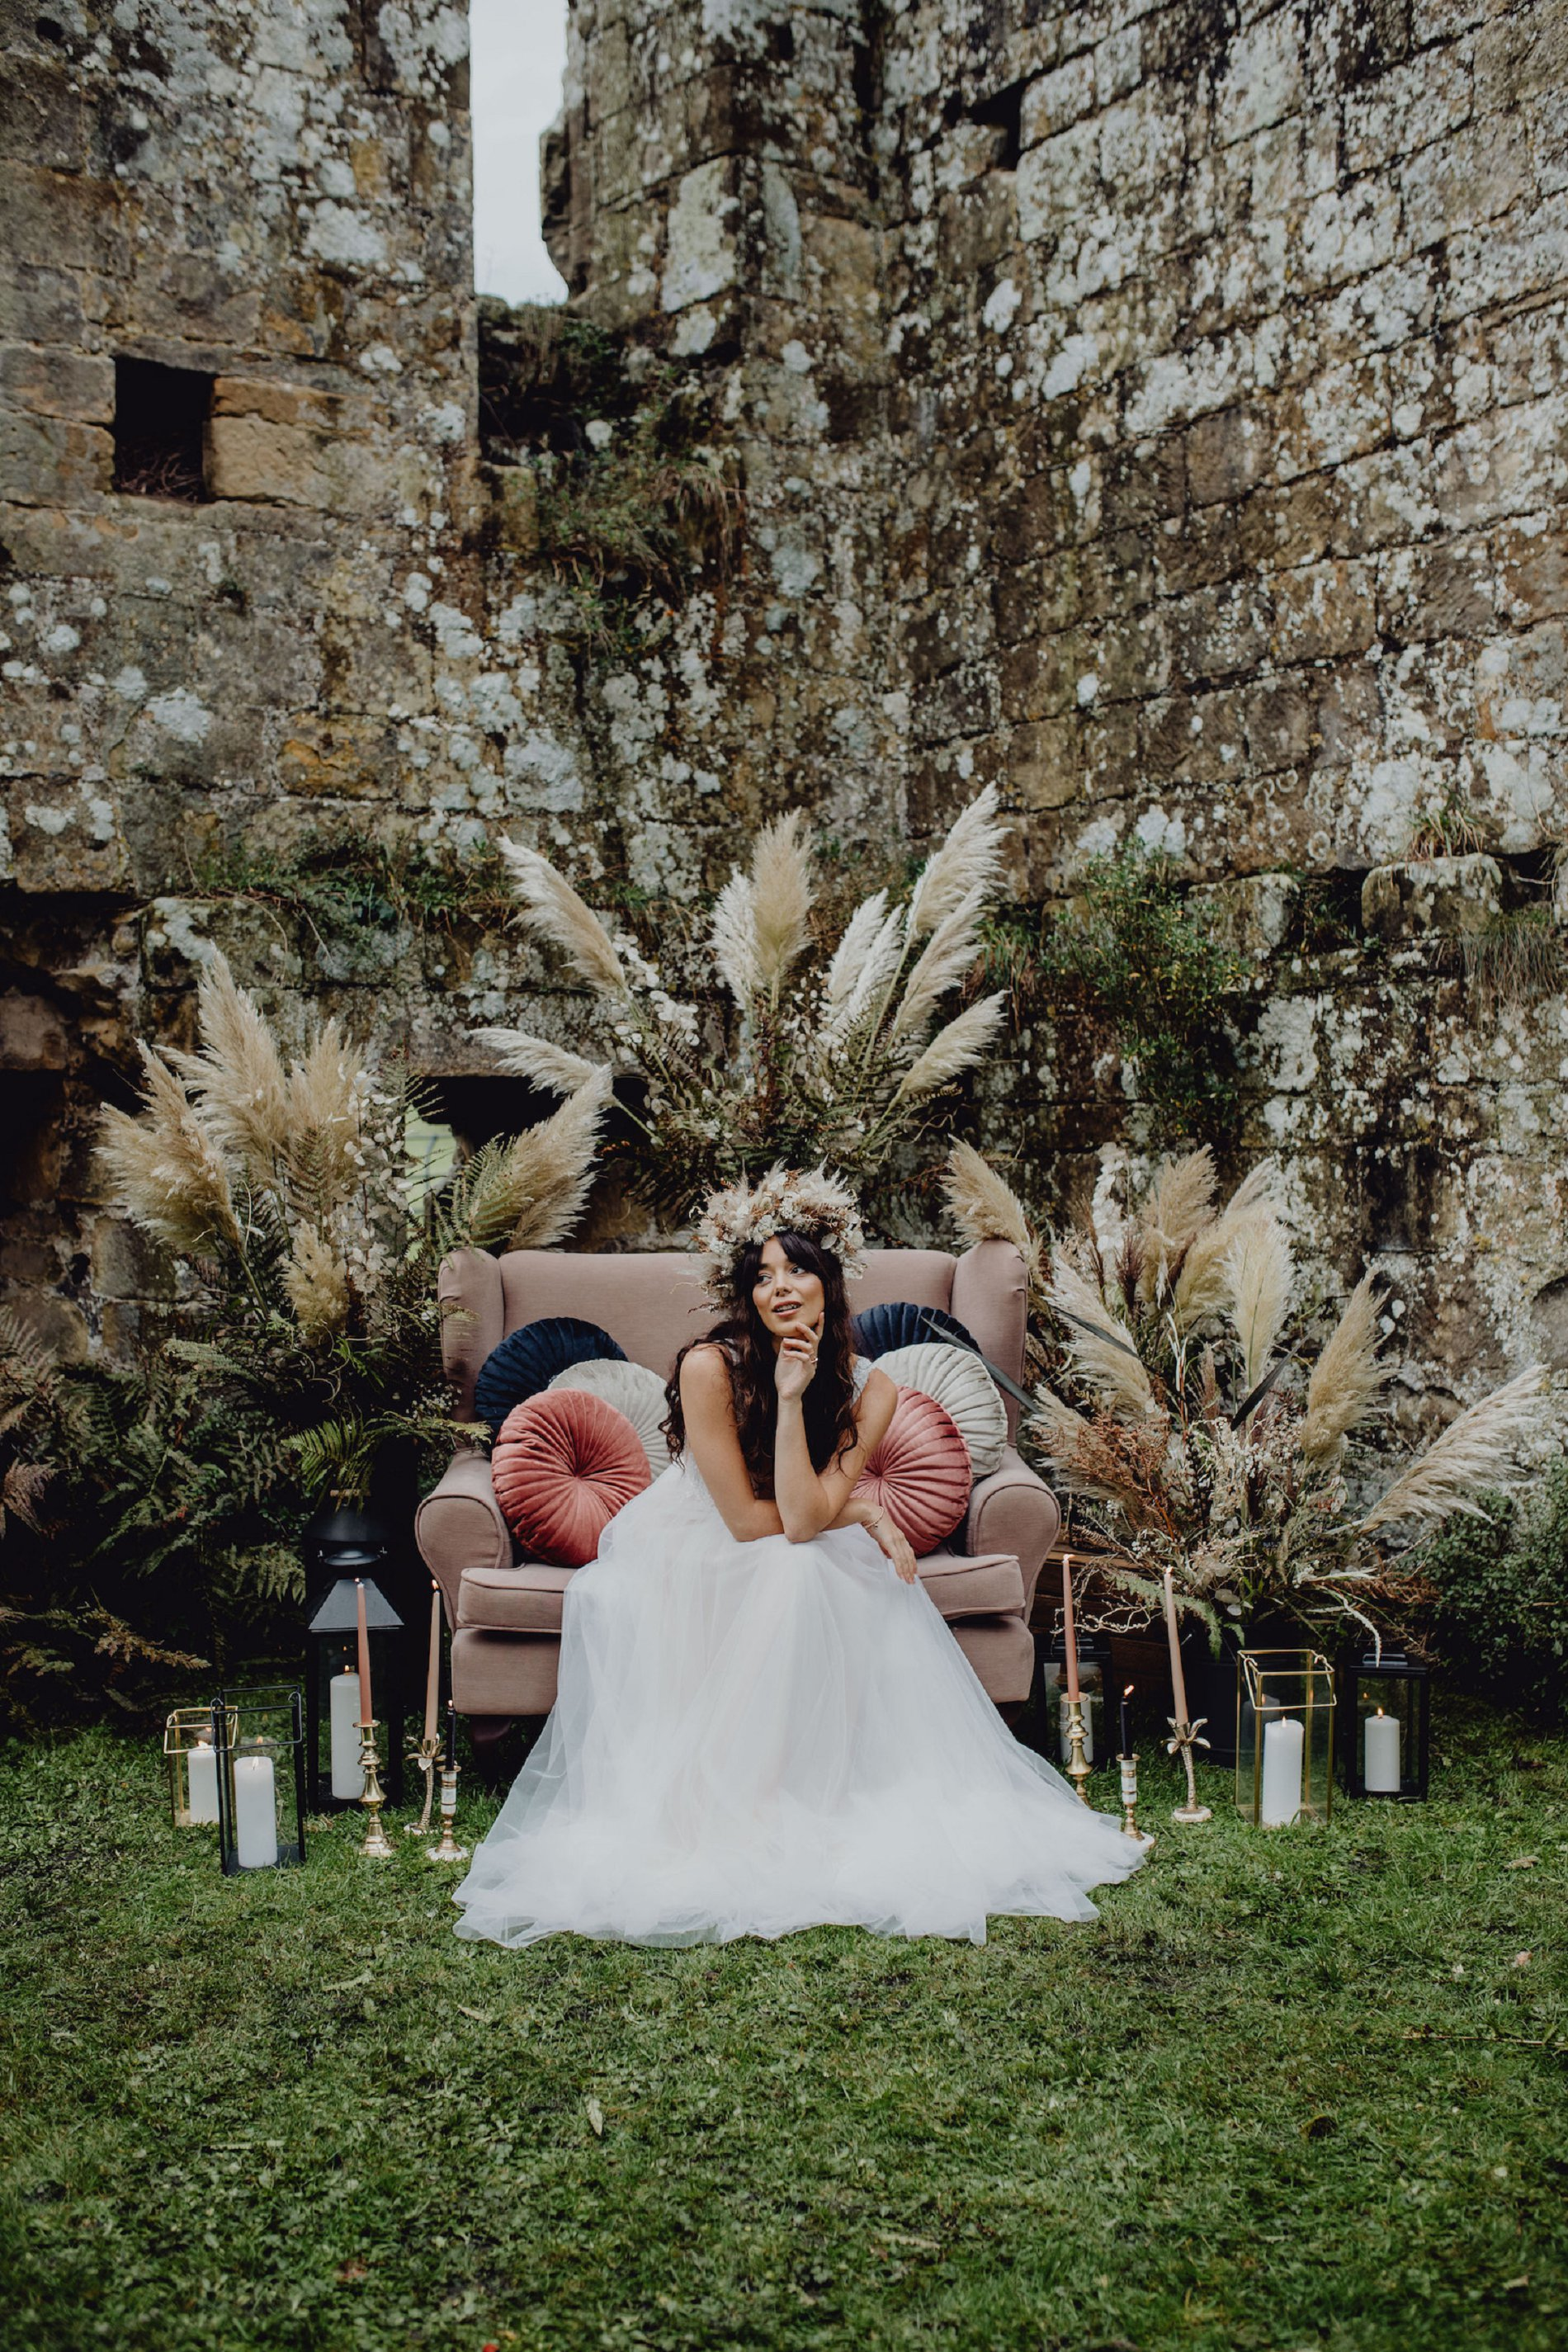 A Dark Romantic Wedding Shoot at Jervaulx Abbey (c) Emilia Kate Photography (3)